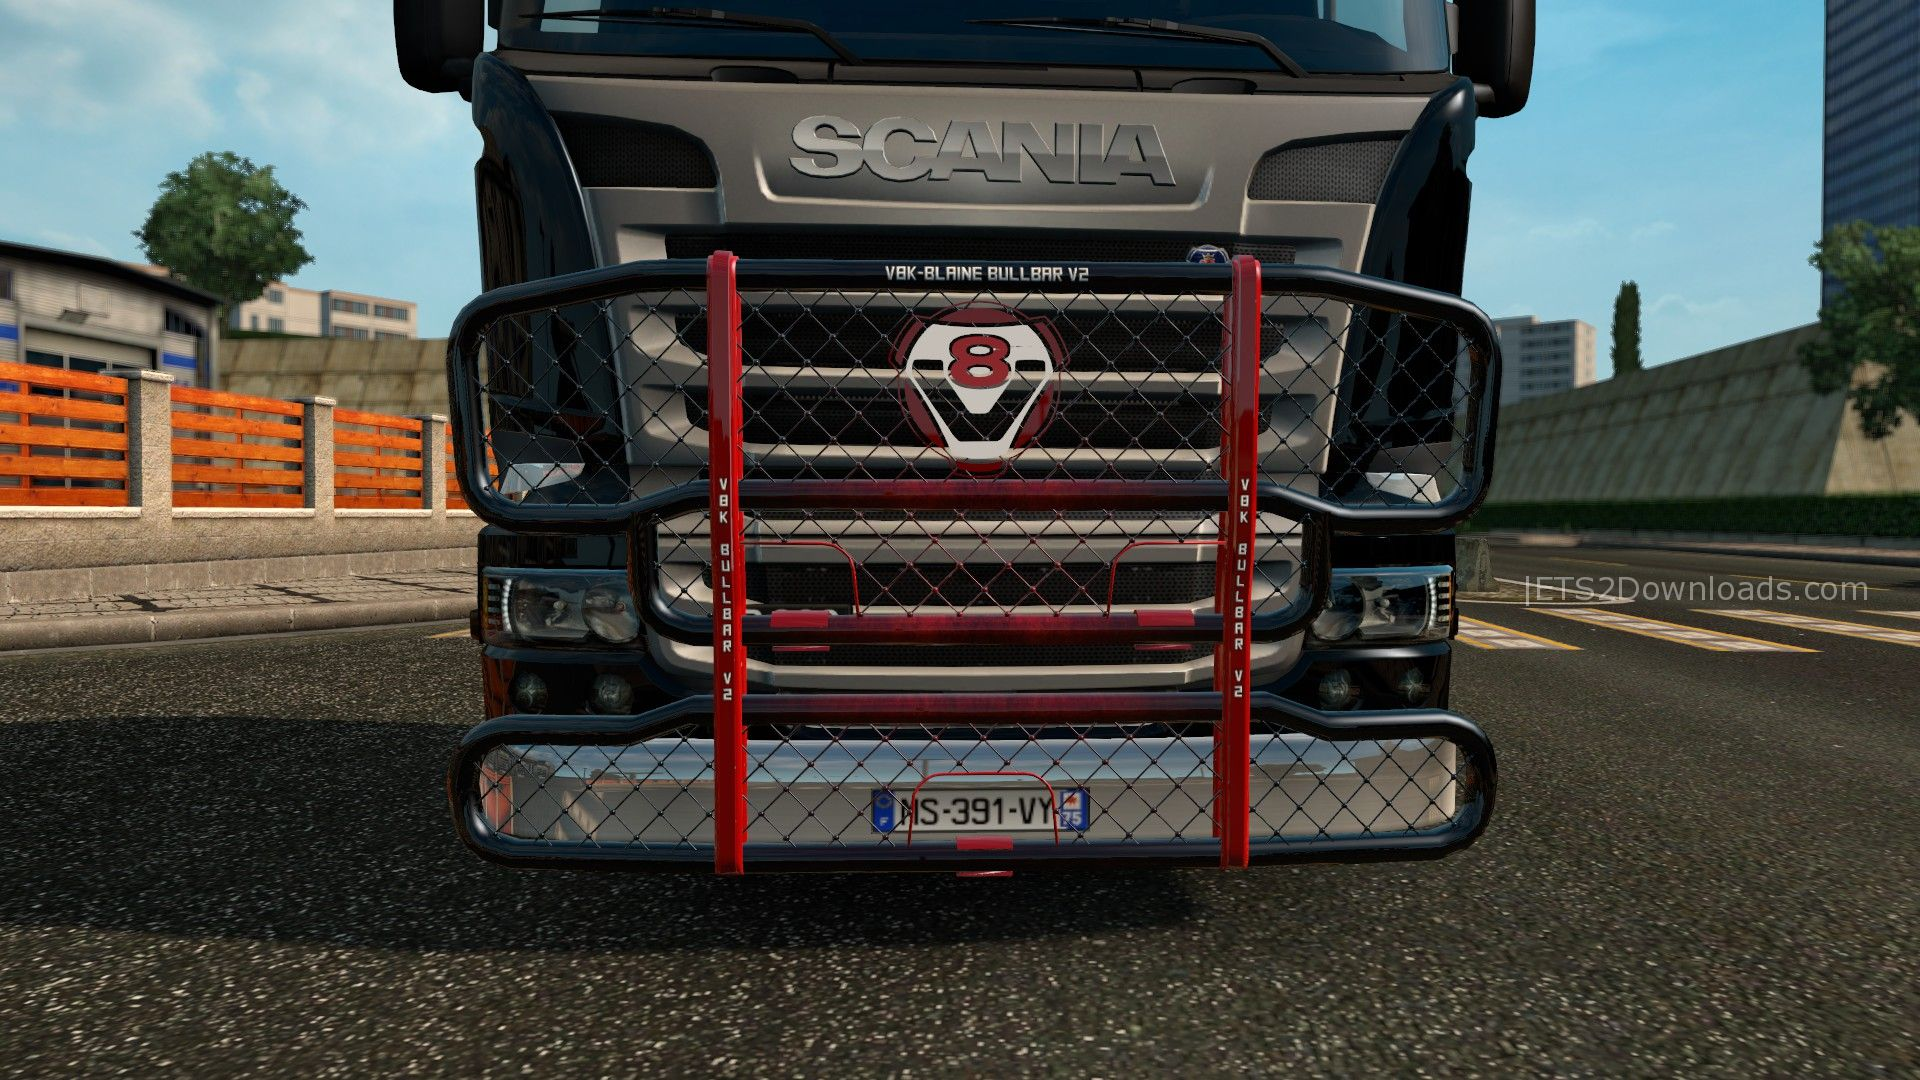 v8k-blaine-bullbar-scania-paintable